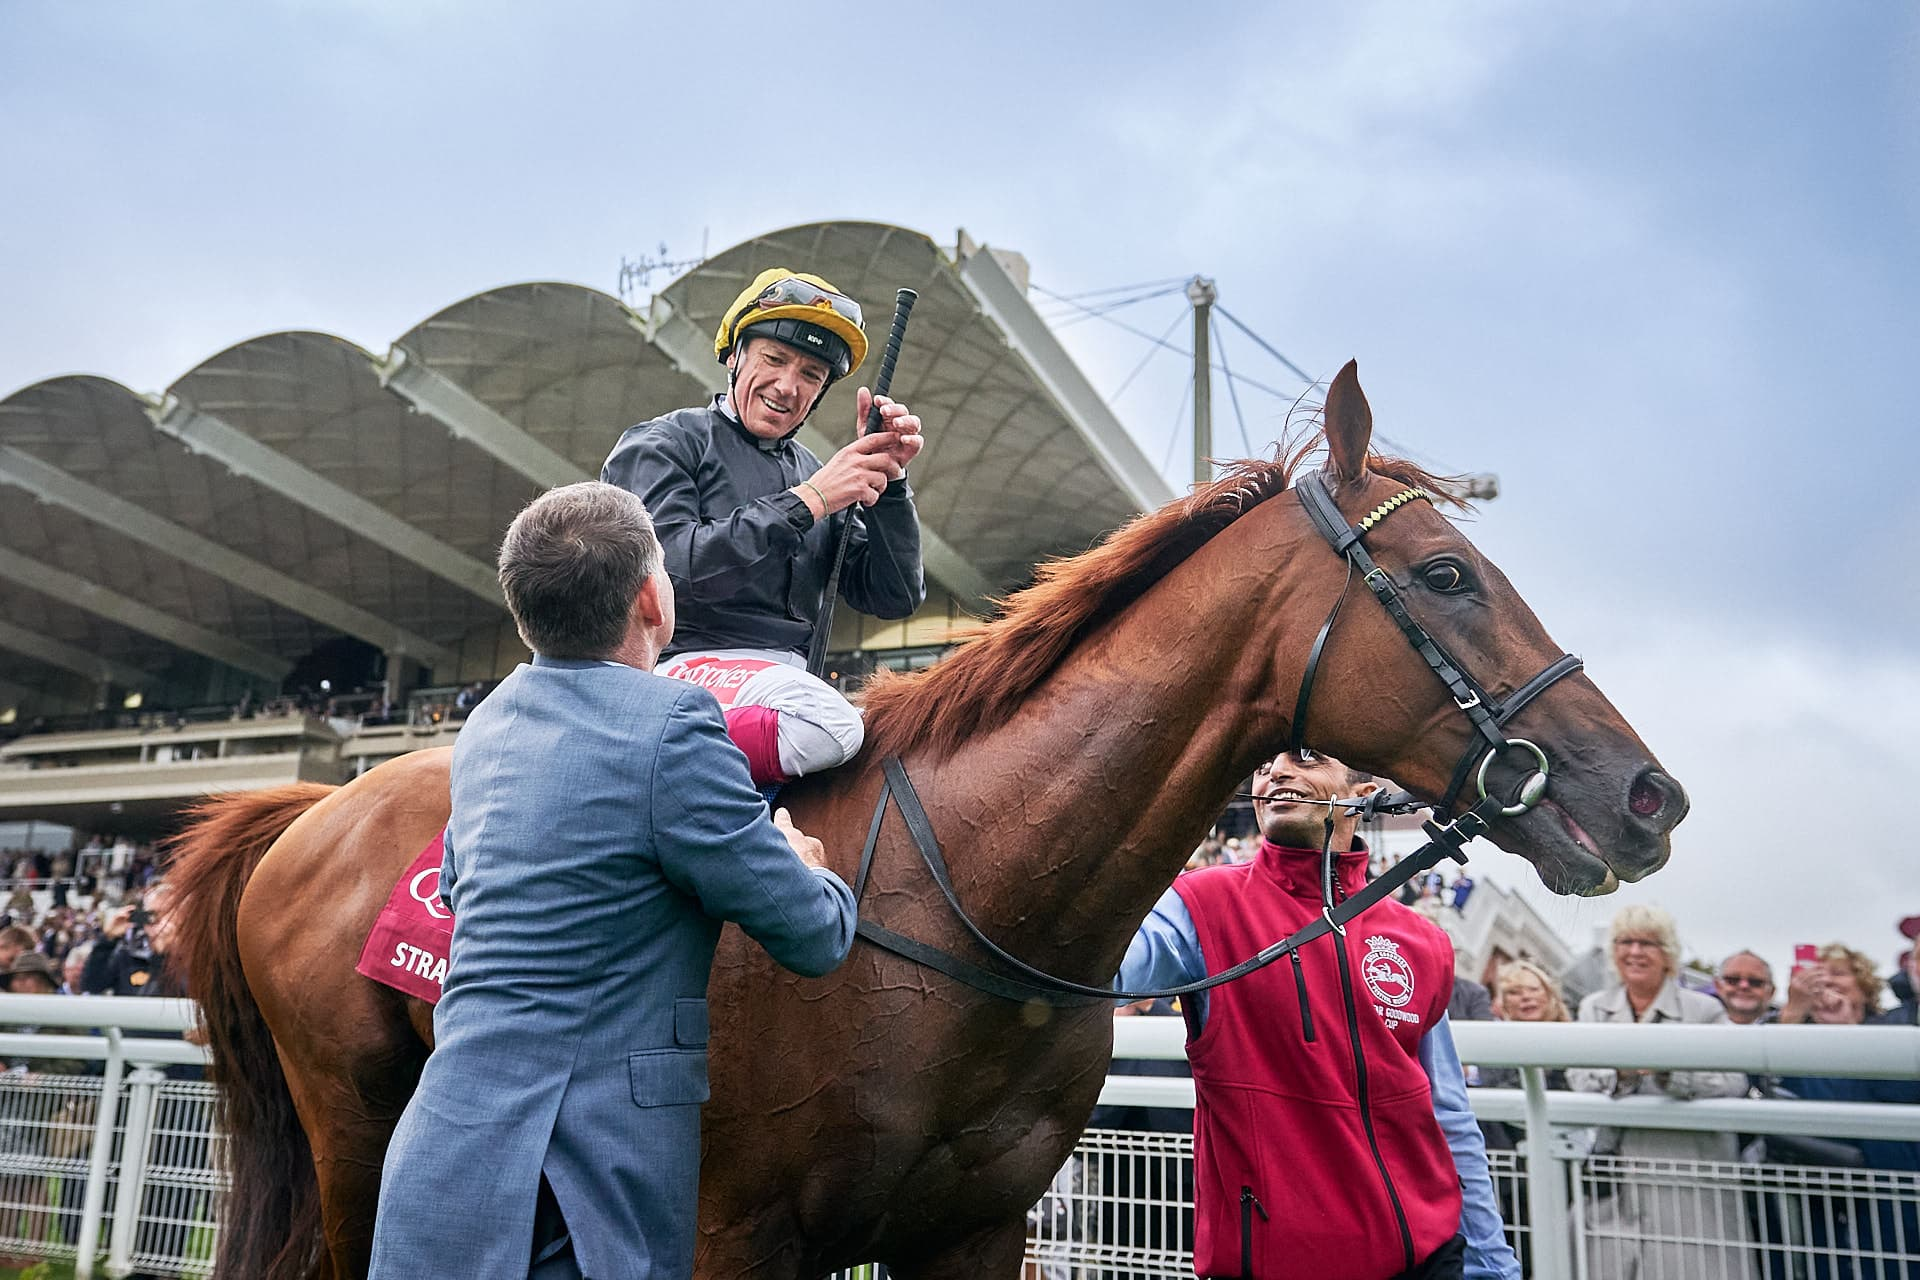 Dominic-James-Horse-Racing-QGF2019_DominicJames-01062-0073.JPG